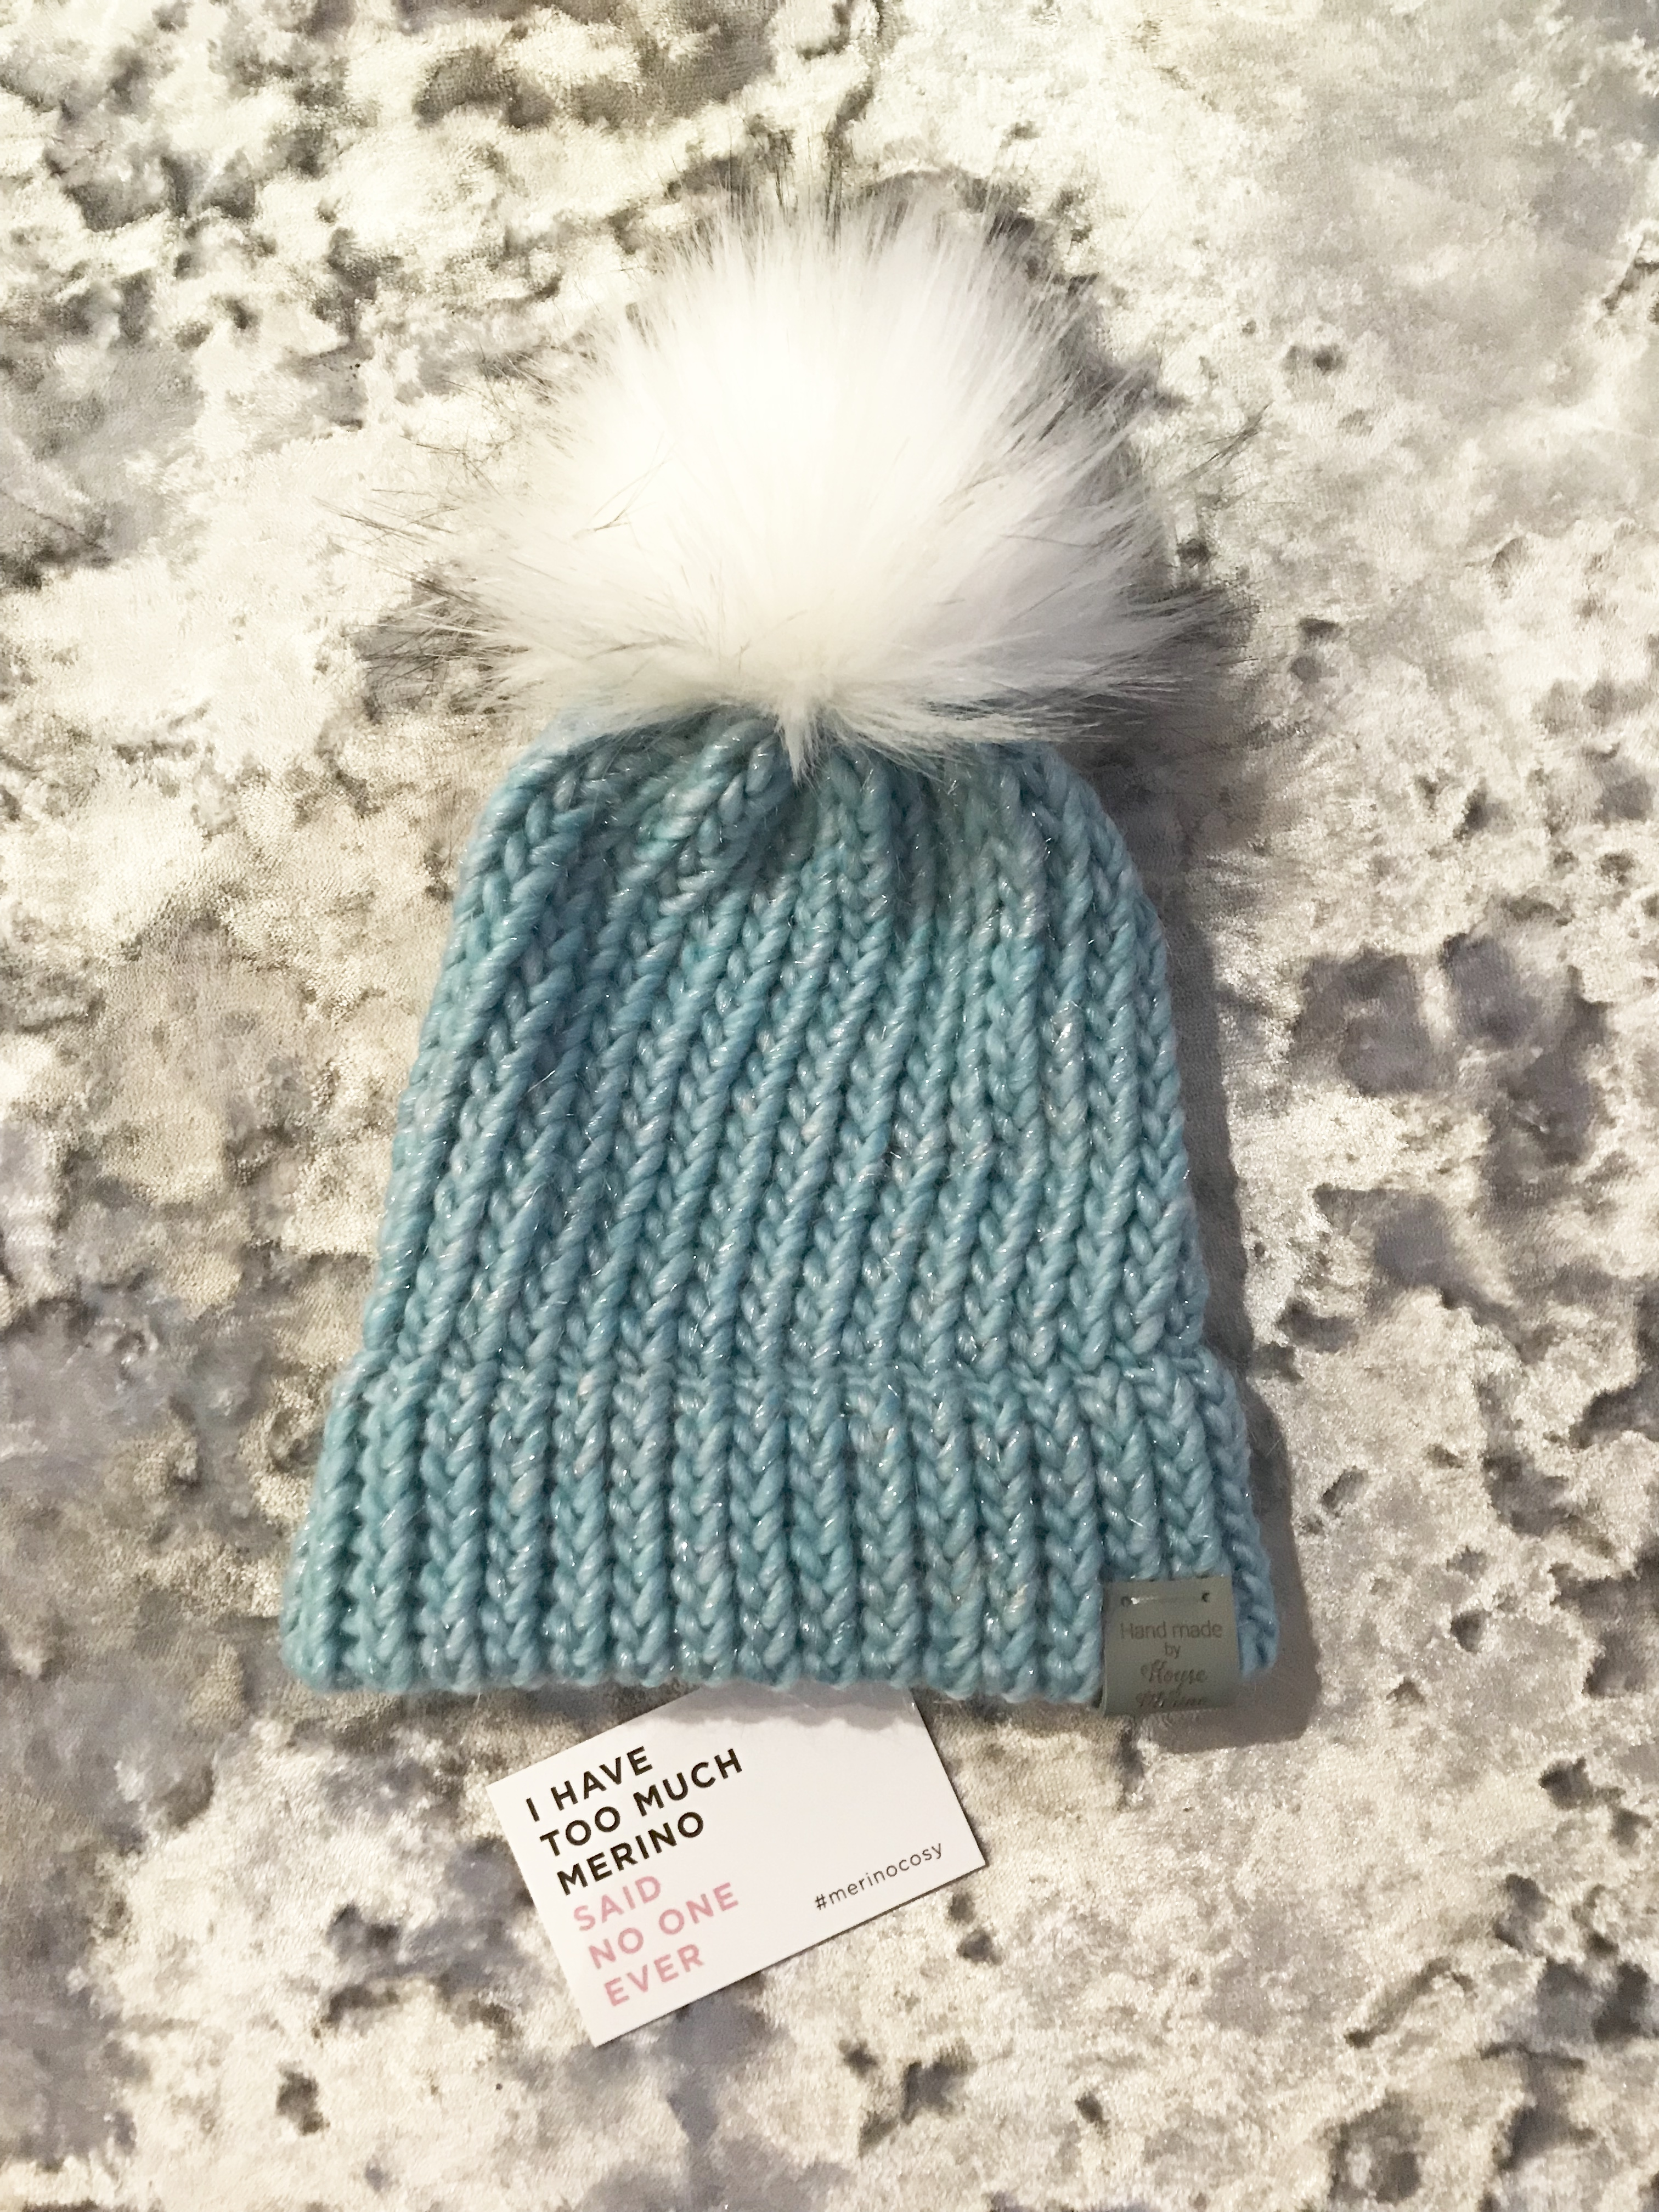 Merino hats - EXCLUSIVE  Worth melting for hats